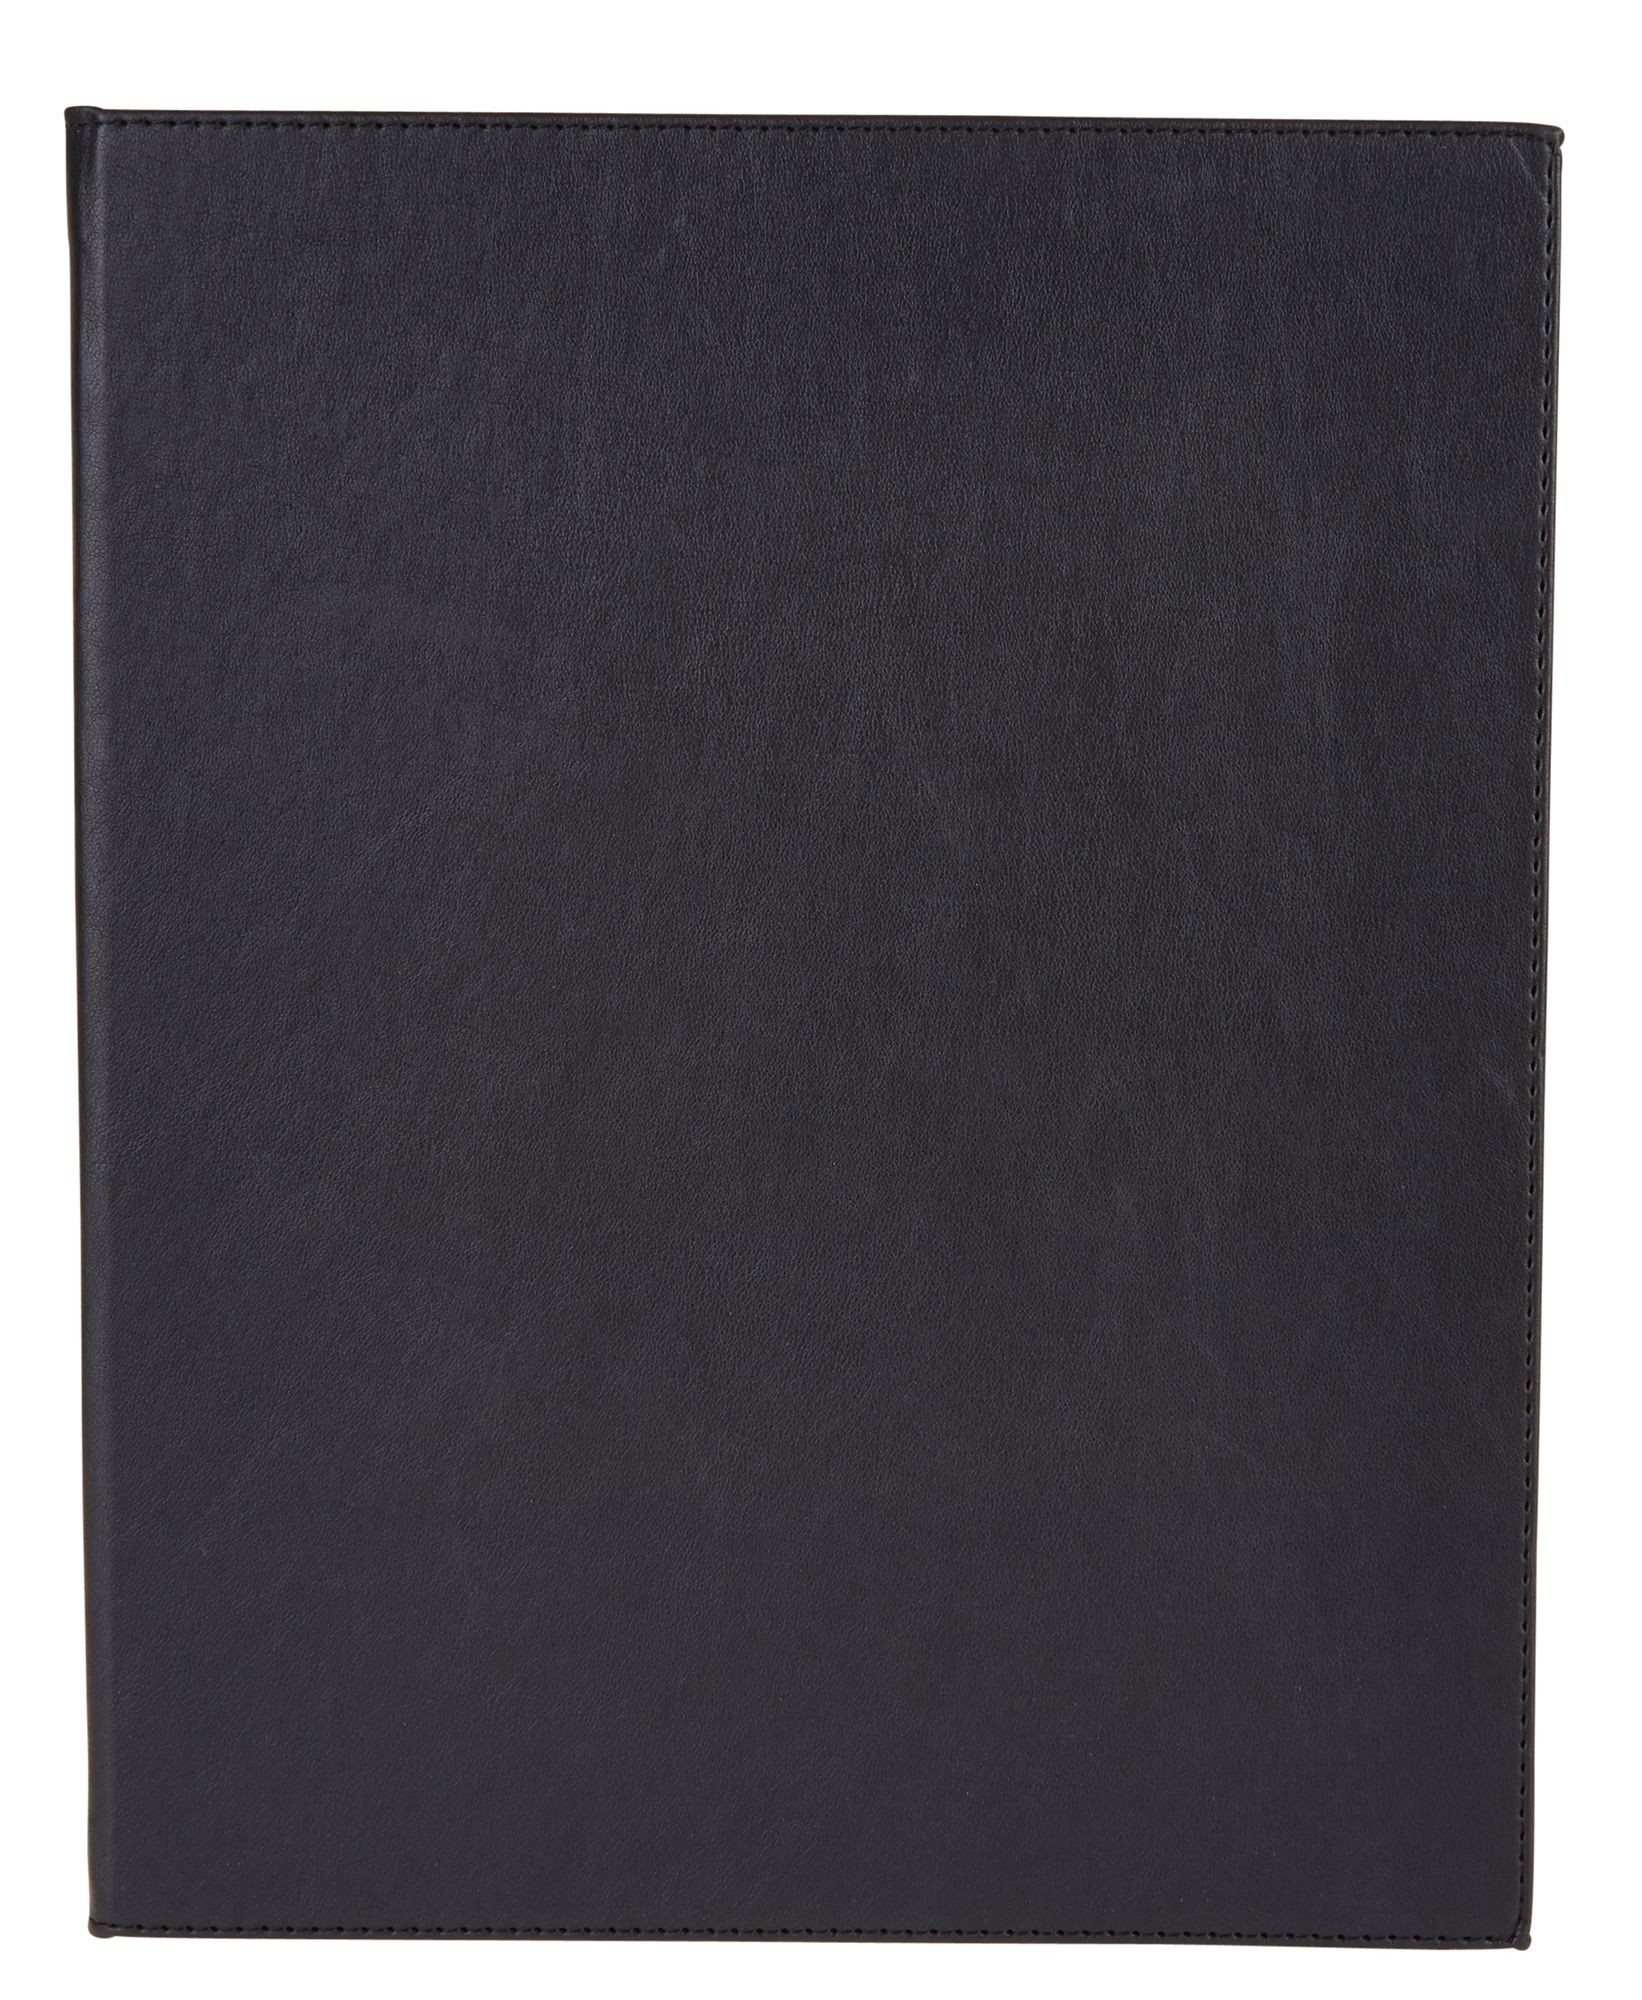 "Winco LMD-814BK 8-1/2"" x 14"" Black Leatherette Two Panel Menu Cover"